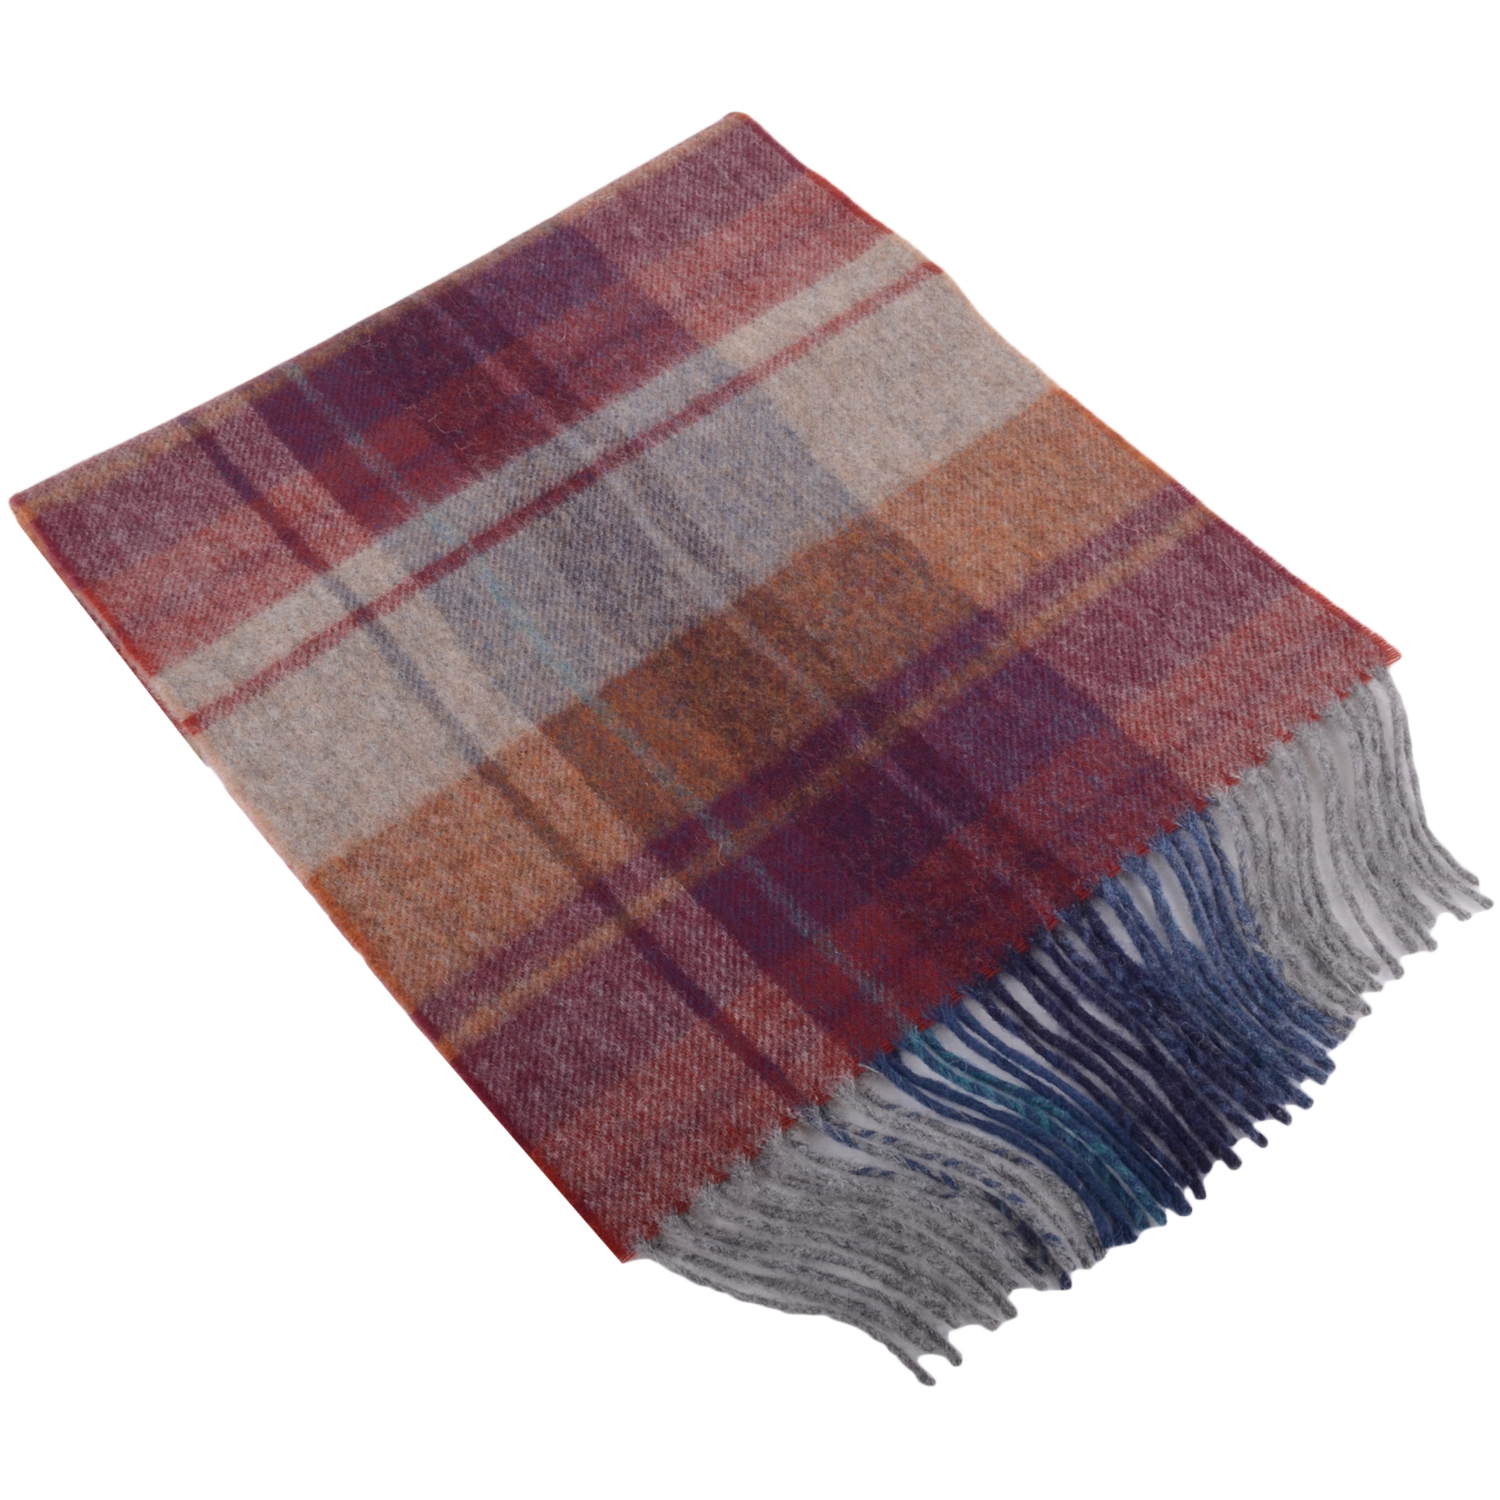 30cm x 185cm Lambswool Scarf - Country Check Arran